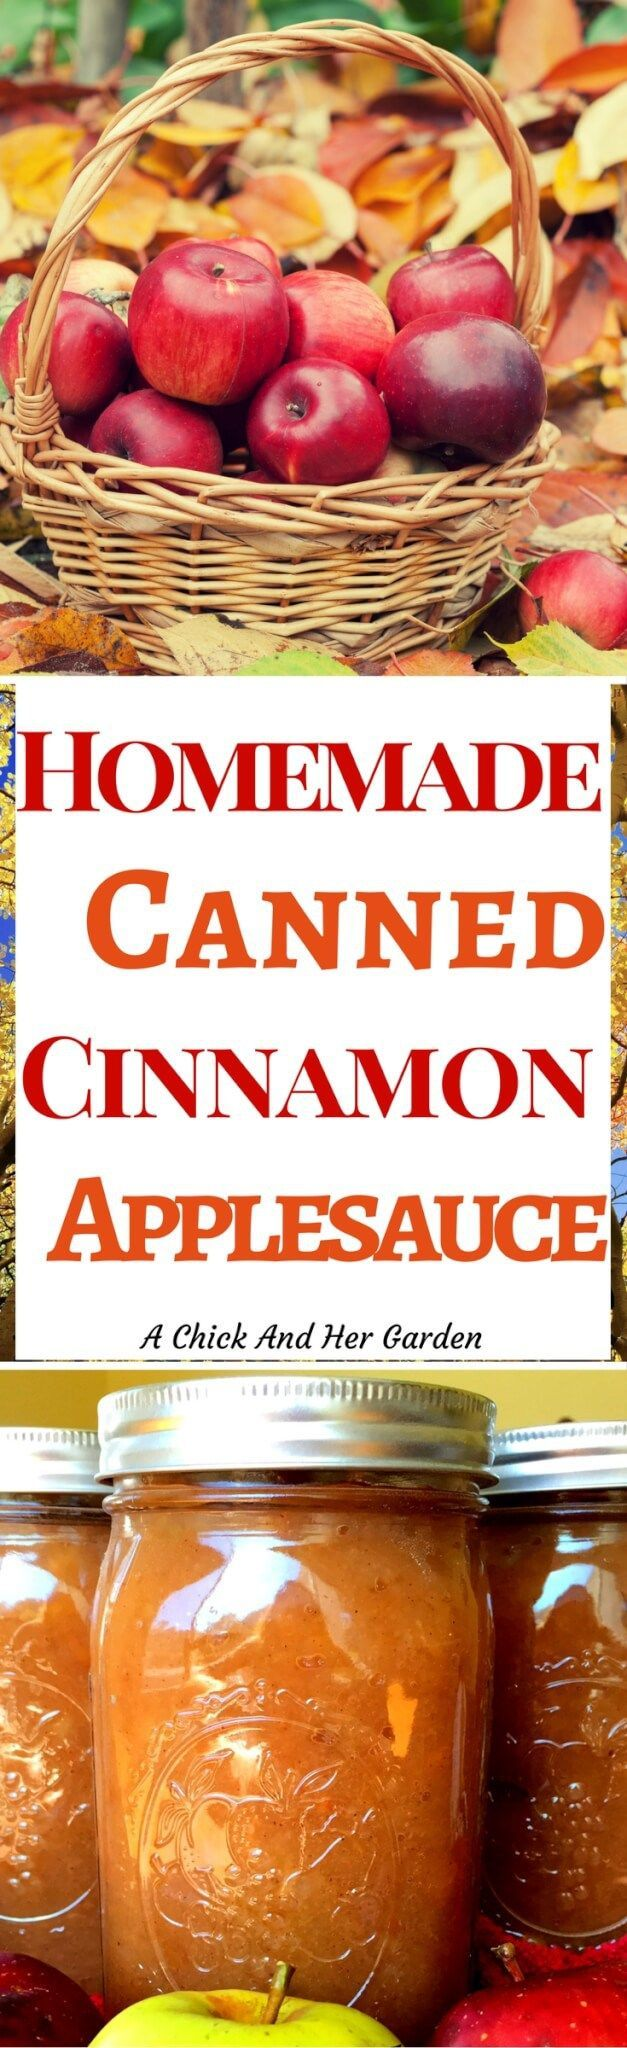 What could be better than homemade applesauce?? Home canned Cinnamon Applesauce! On top of that, see how I sweeten it without sugar! #canning #foodpreservation #homesteading #applesauce